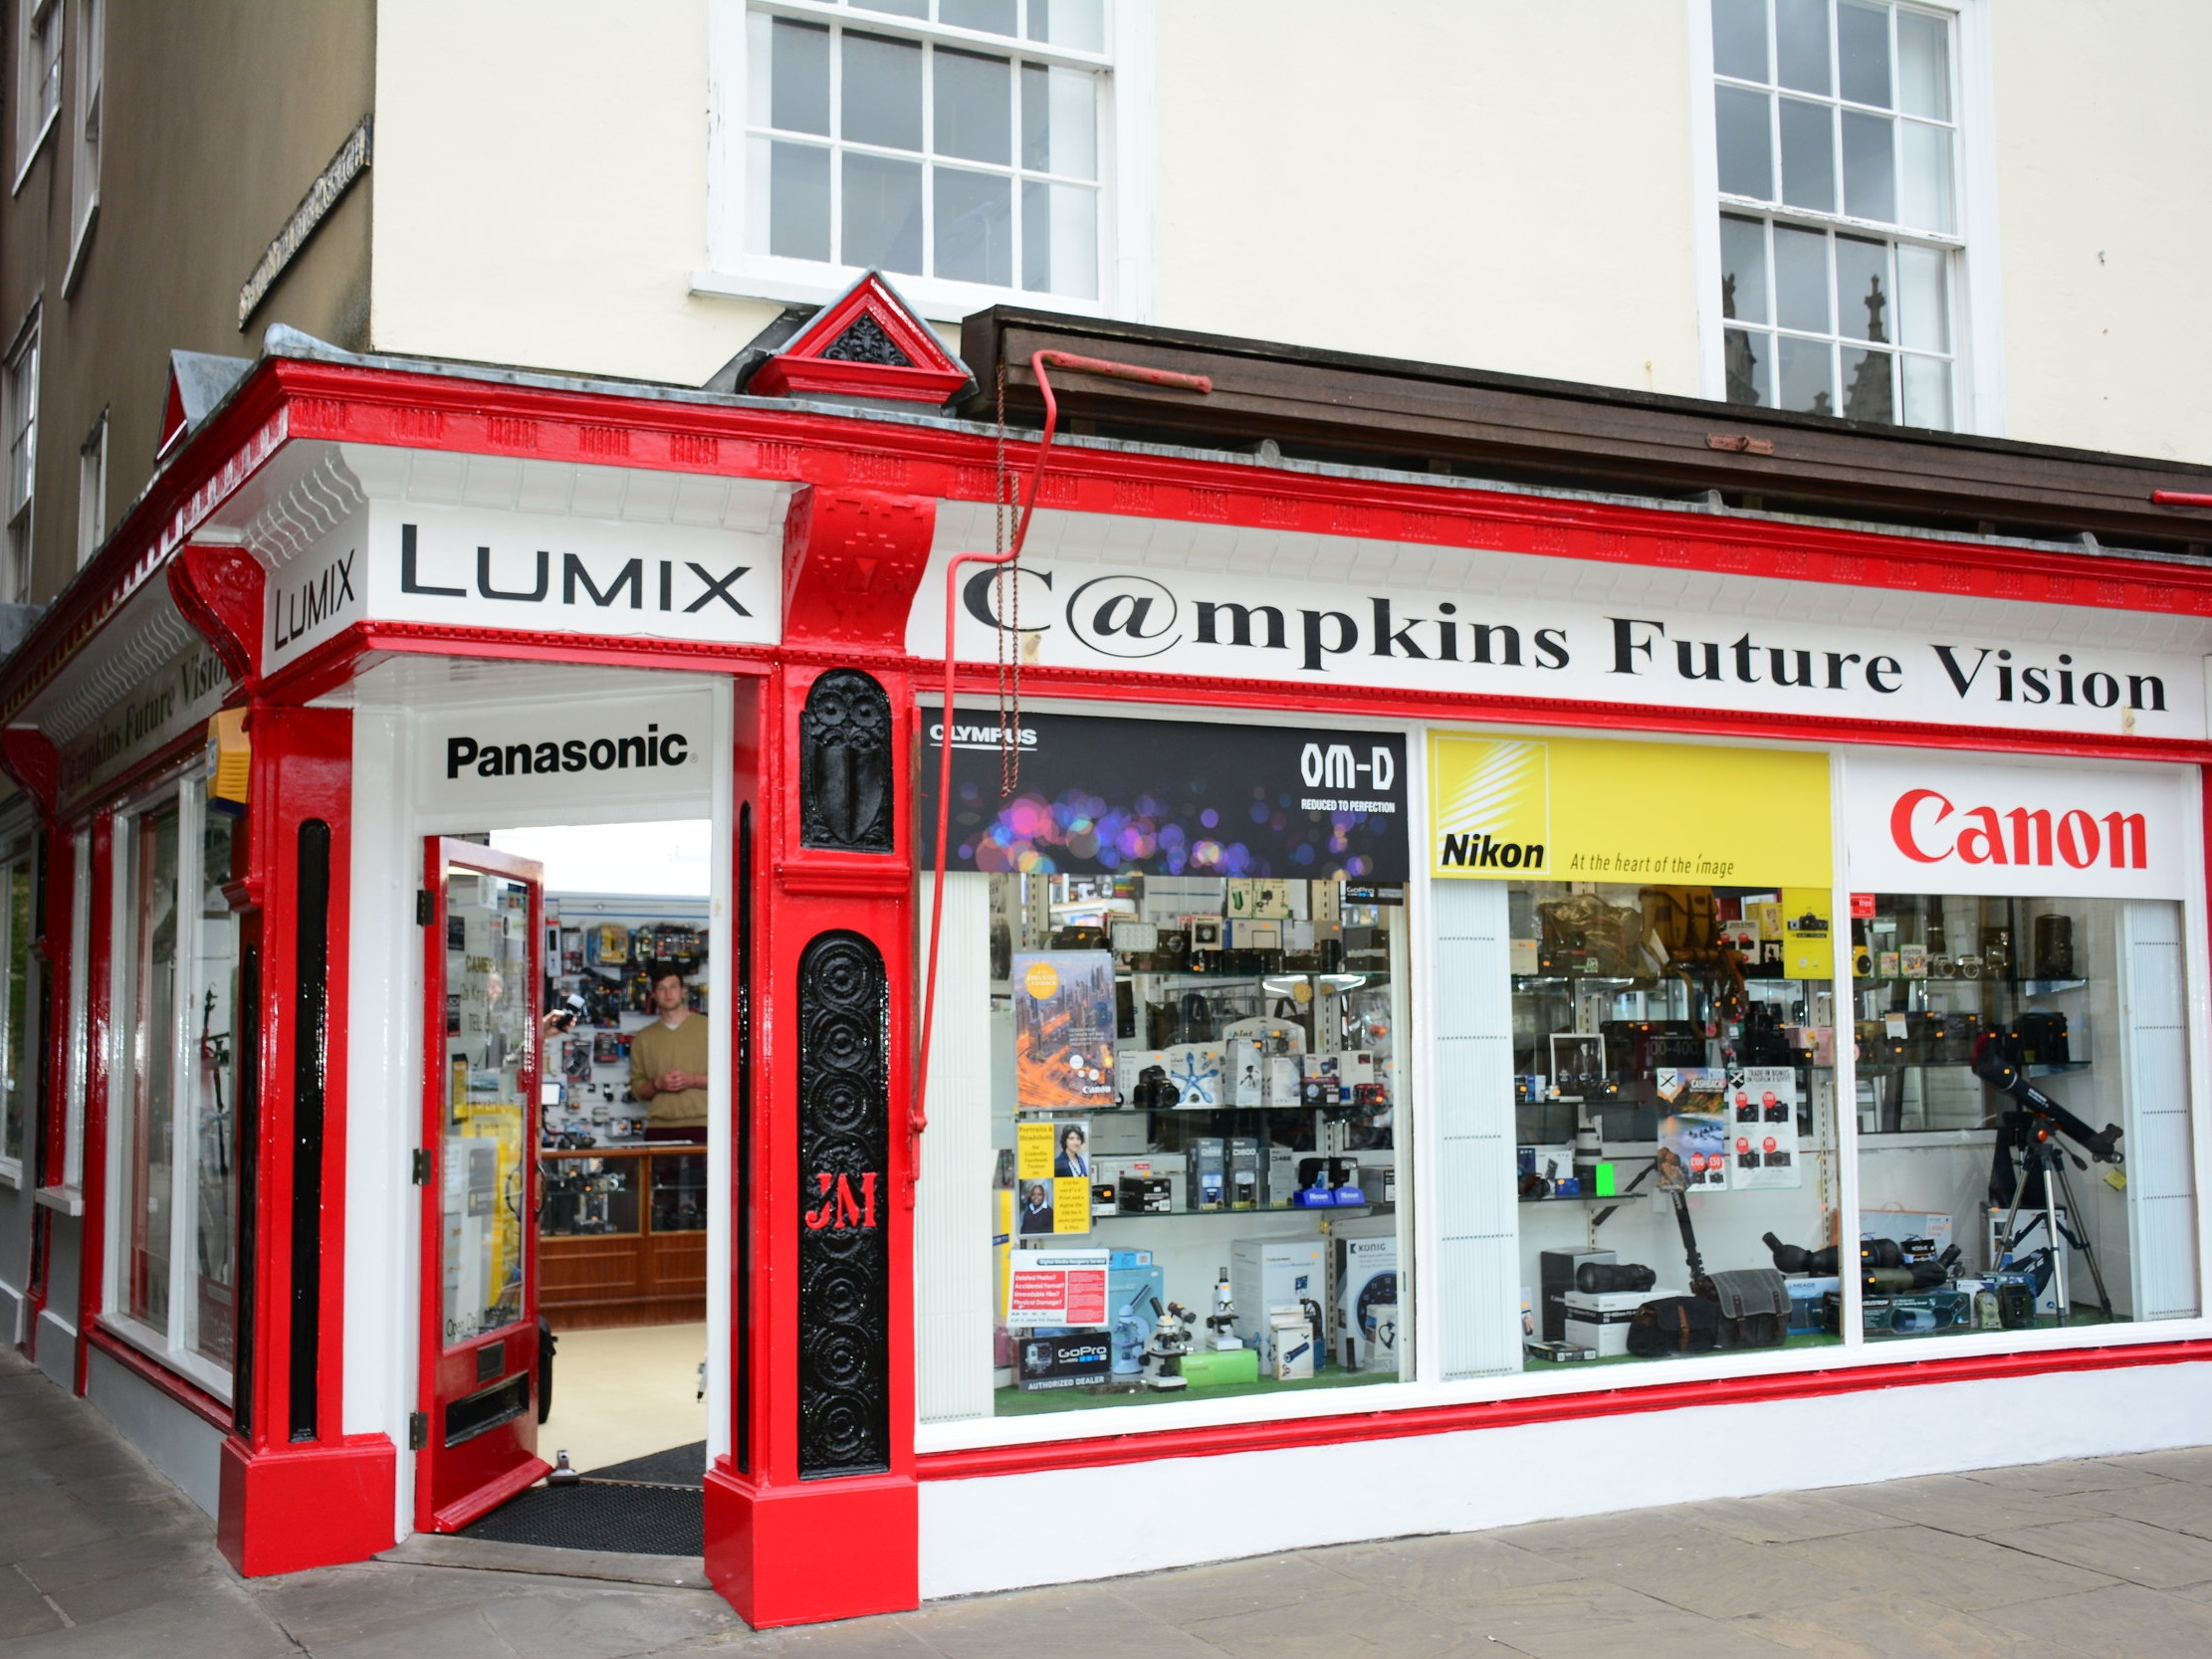 Campkins Cameras - Win a camera, buy one get one half price, 10% off, free memory cards, it's all happening at Campkins